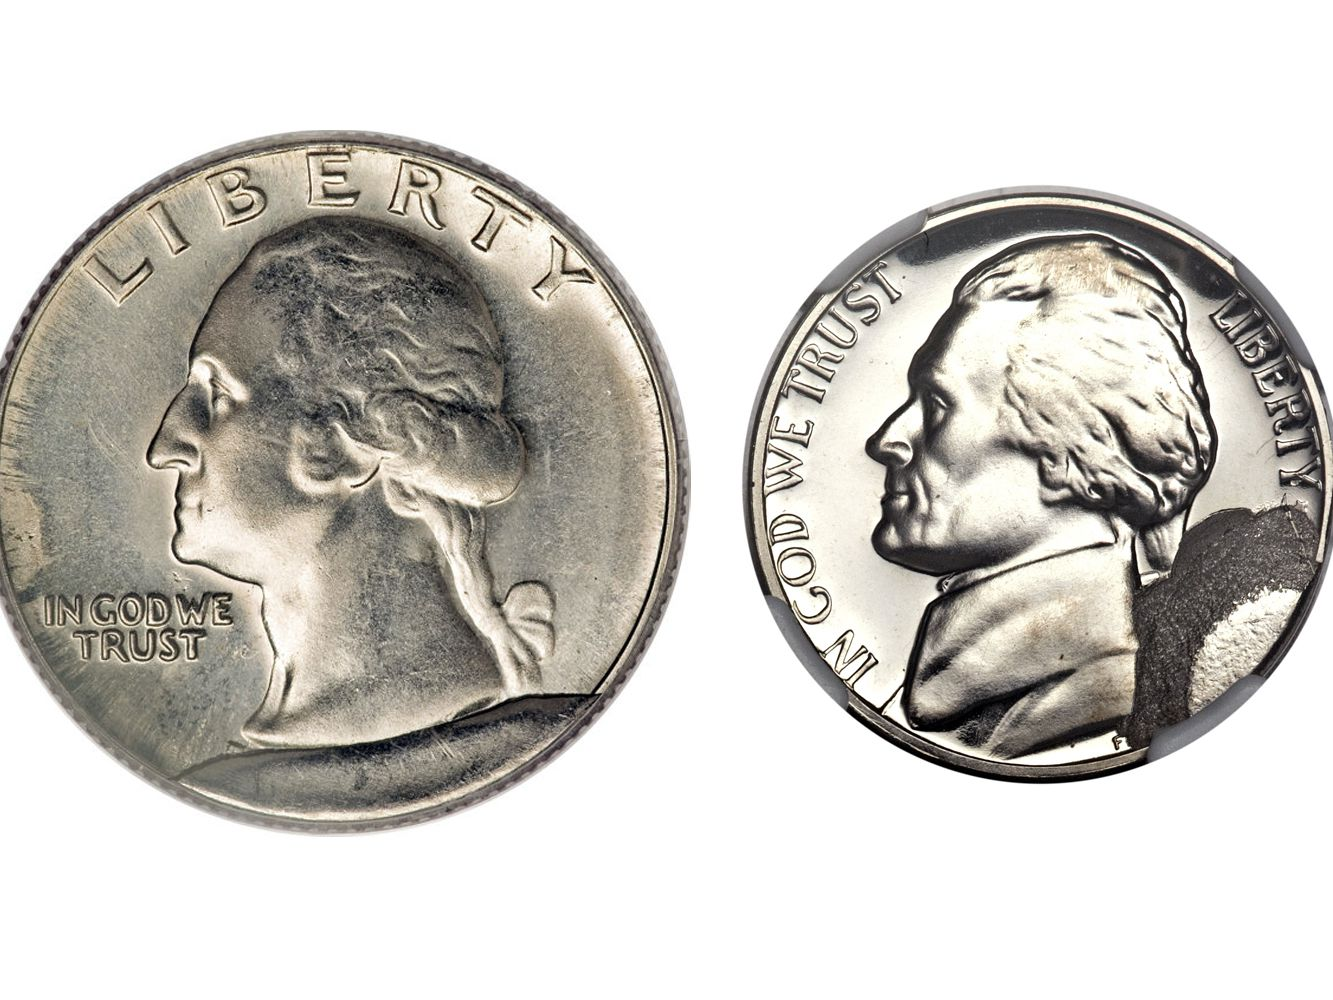 The World's Top Ten Nickel Producers